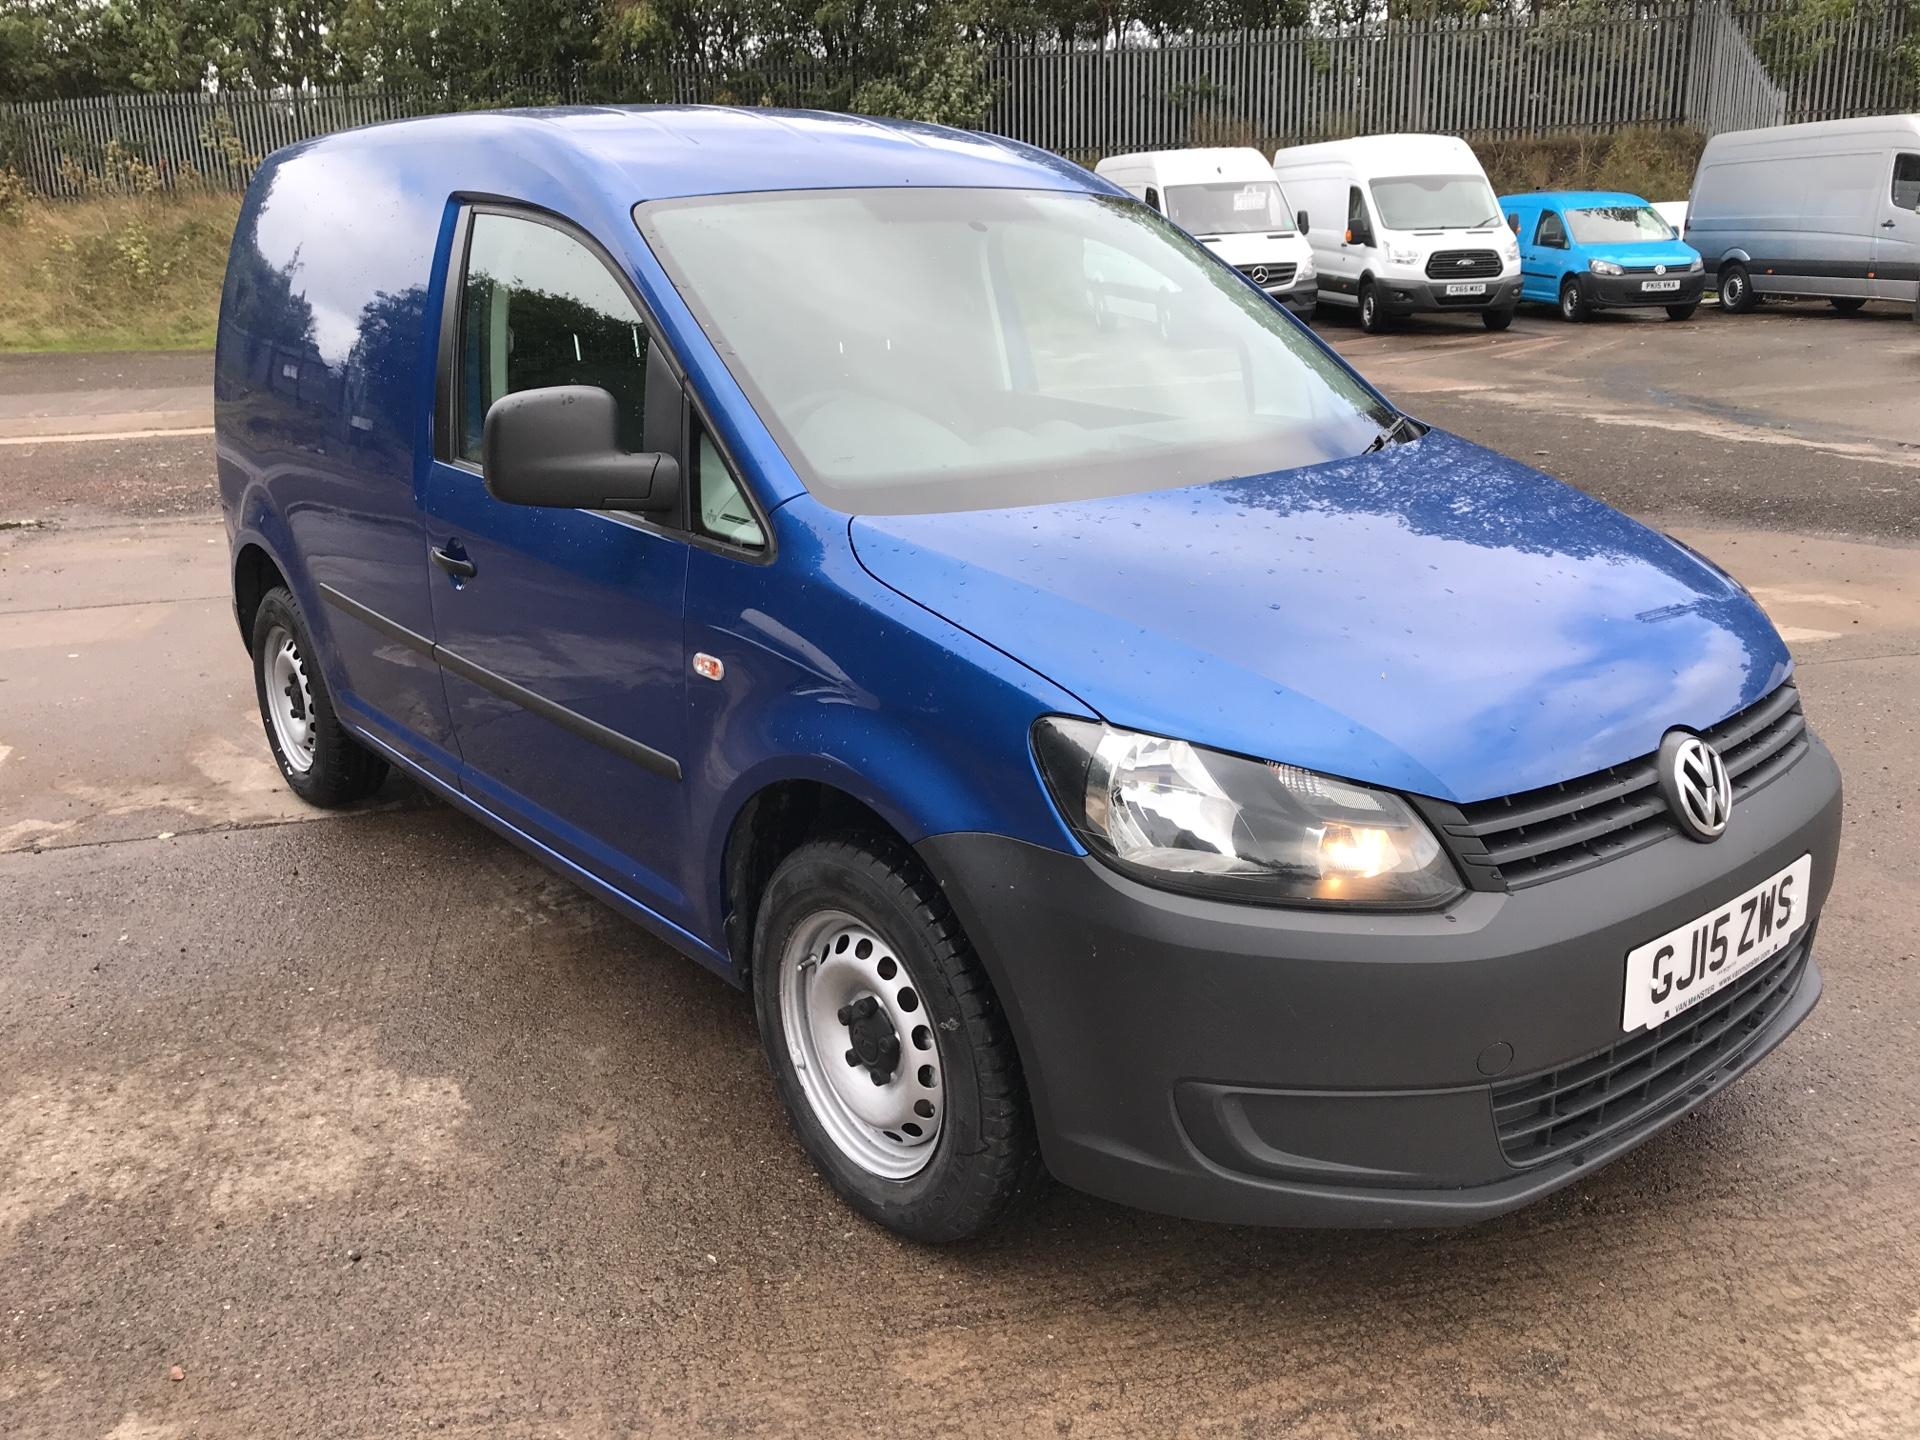 2015 Volkswagen Caddy 1.6 TDI 75PS STARTLINE EURO 5 (VALUE RANGE VEHICLE - CONDITION REFLECTED IN PRICE) (GJ15ZWS)